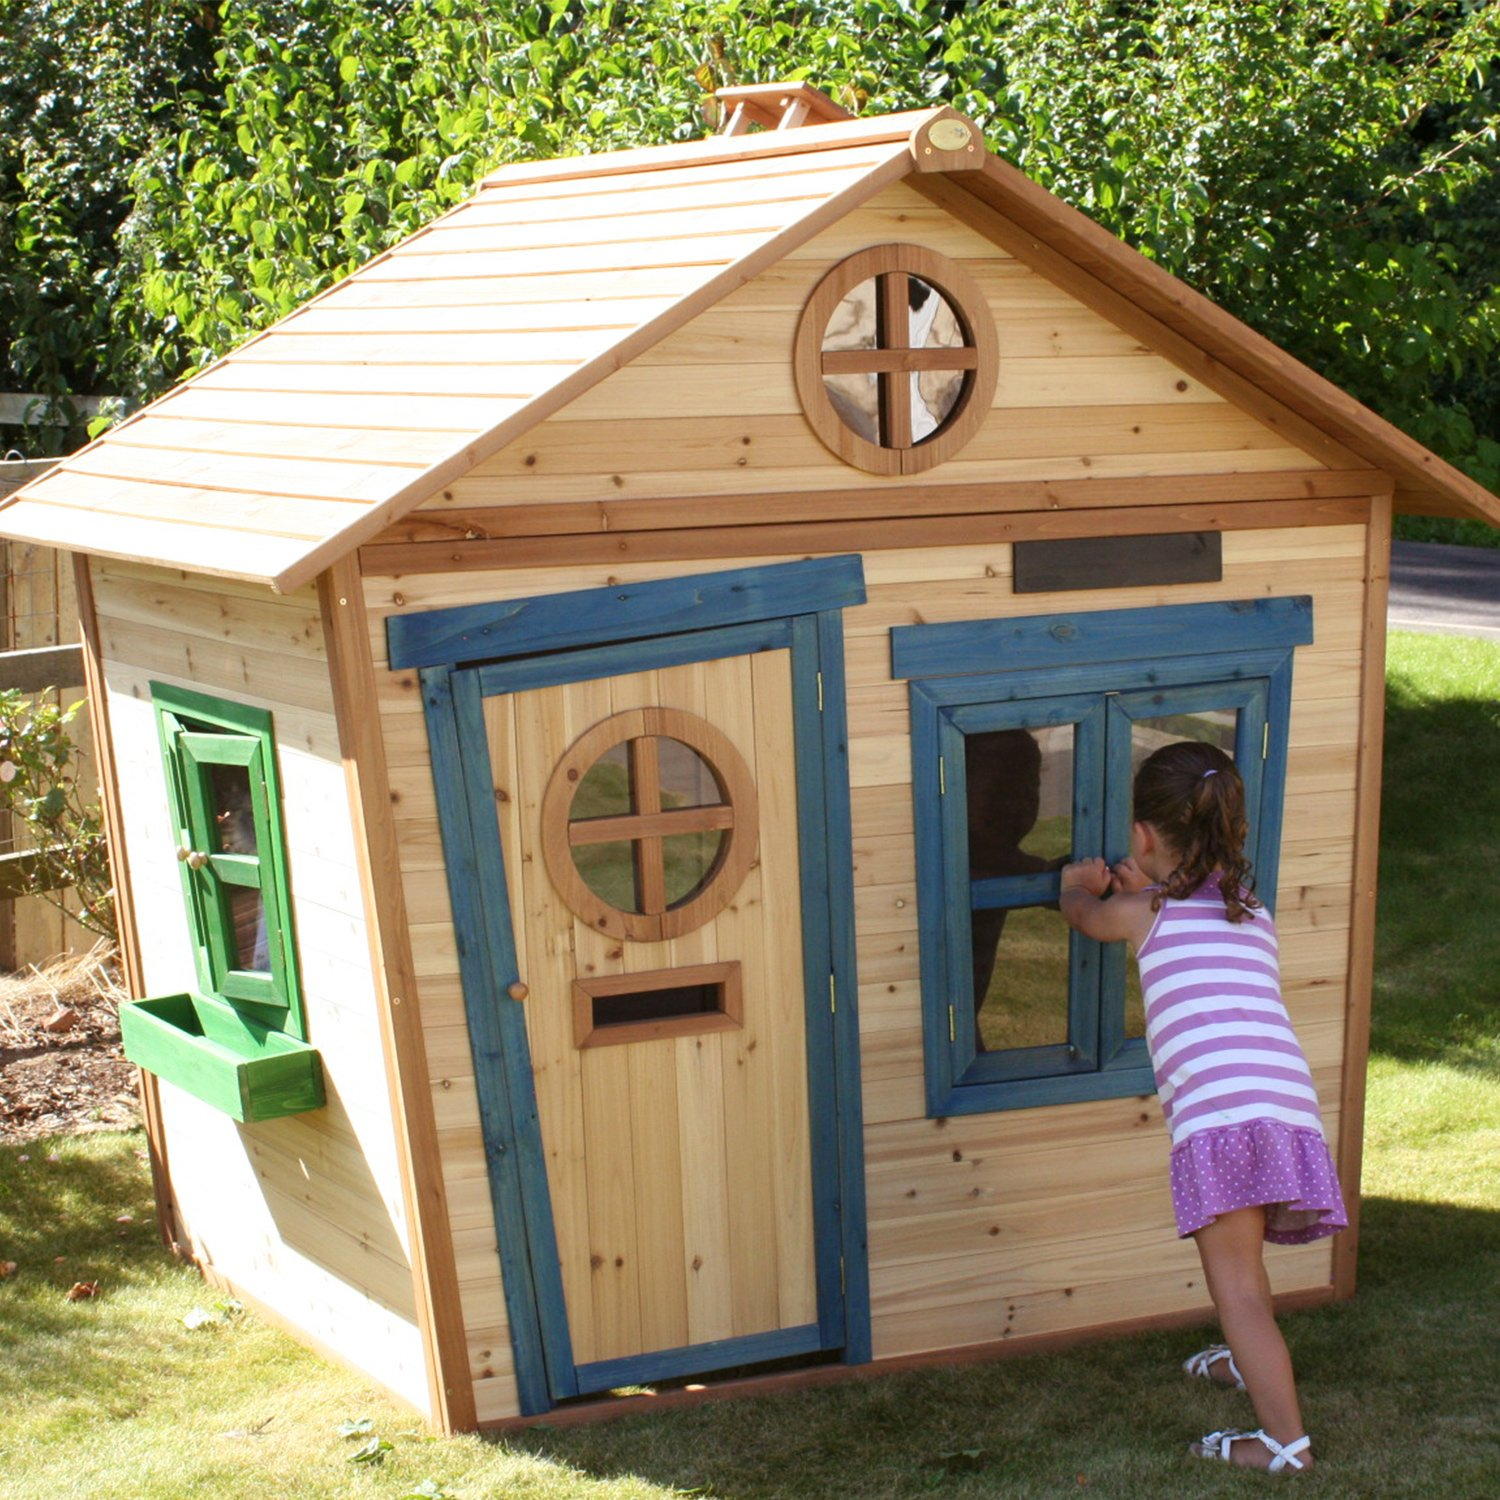 Big Game Hunters 6 X 5 Redwood Mansion Playhouse With Floor Wooden Painted Childrens Large Garden Outdoor Play House With Letterbox